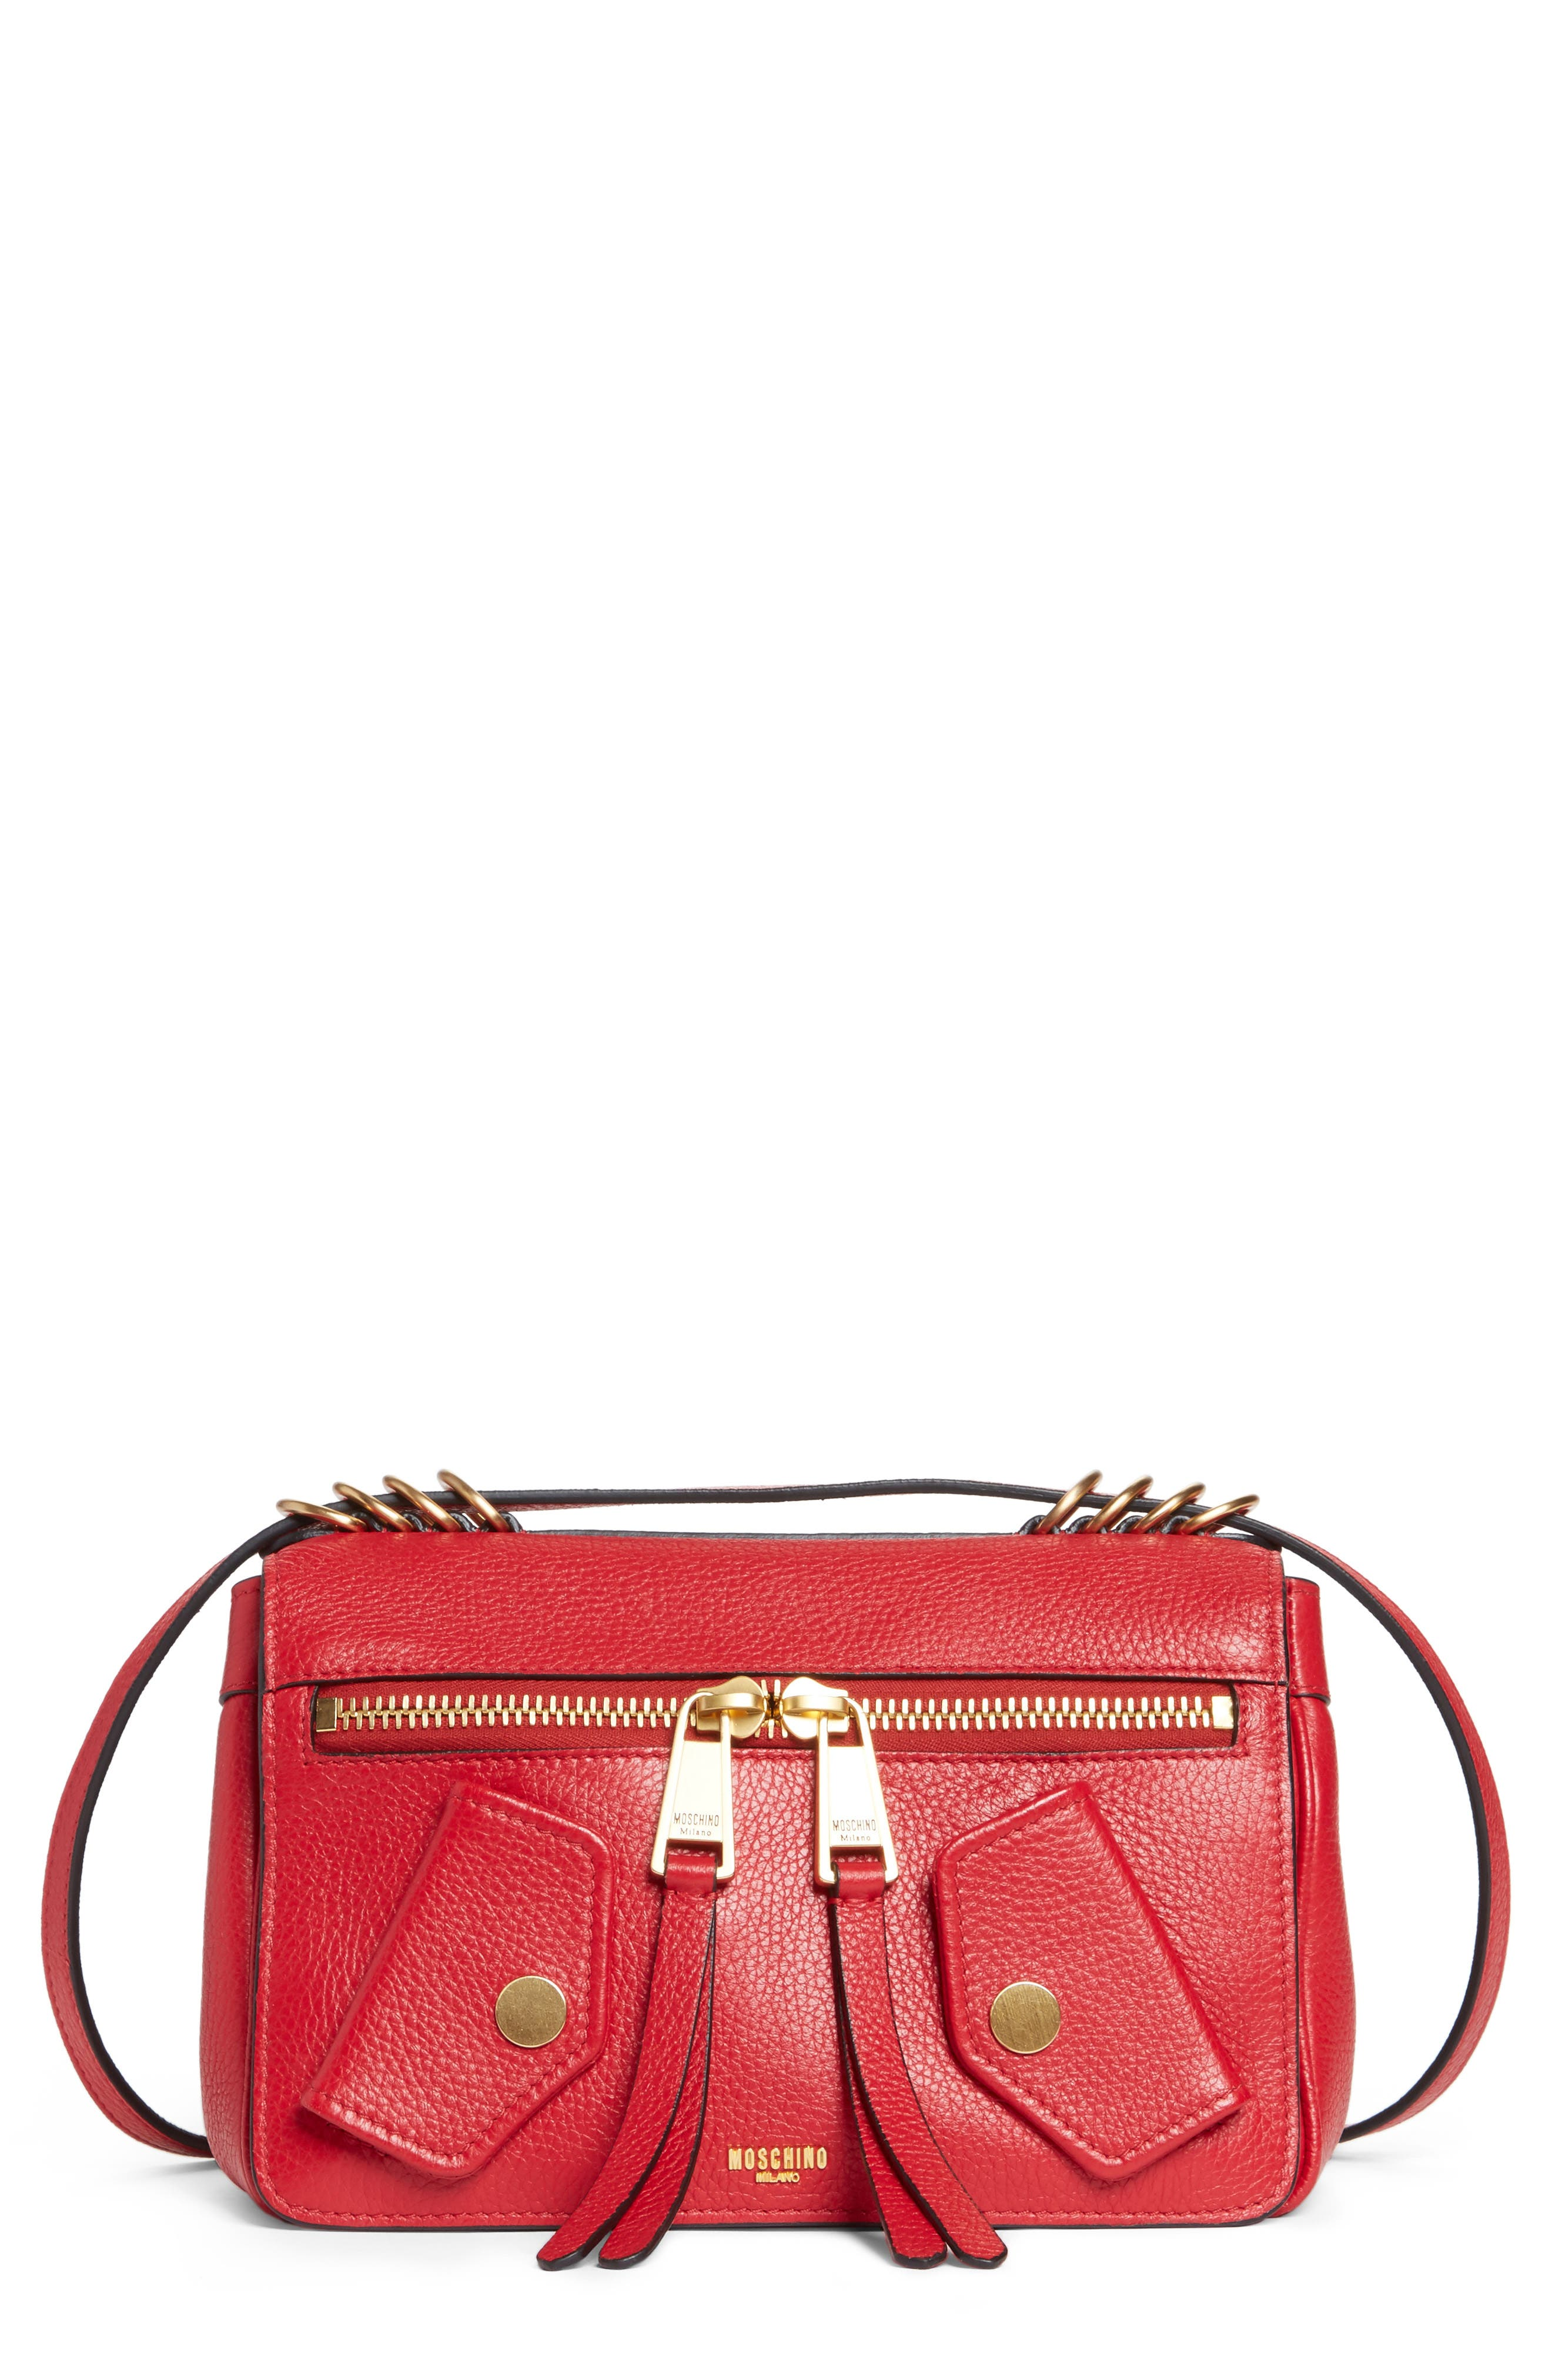 Grainy-B Leather Crossbody Bag,                             Main thumbnail 1, color,                             Red